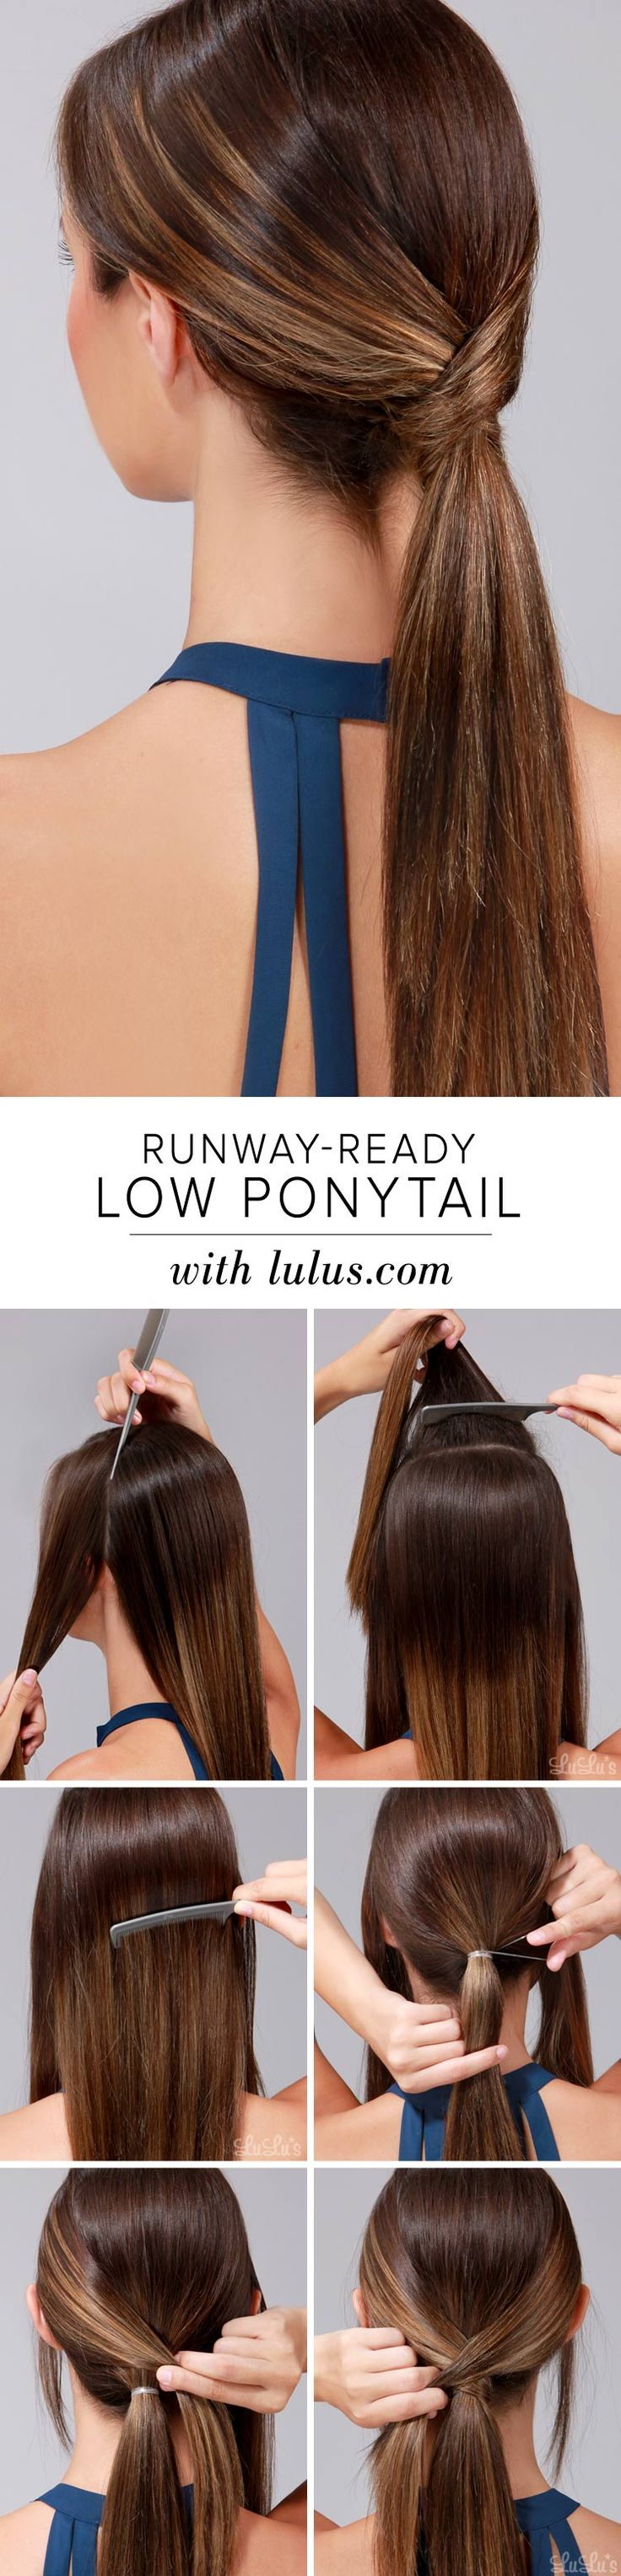 Runway Ready Low Ponytail